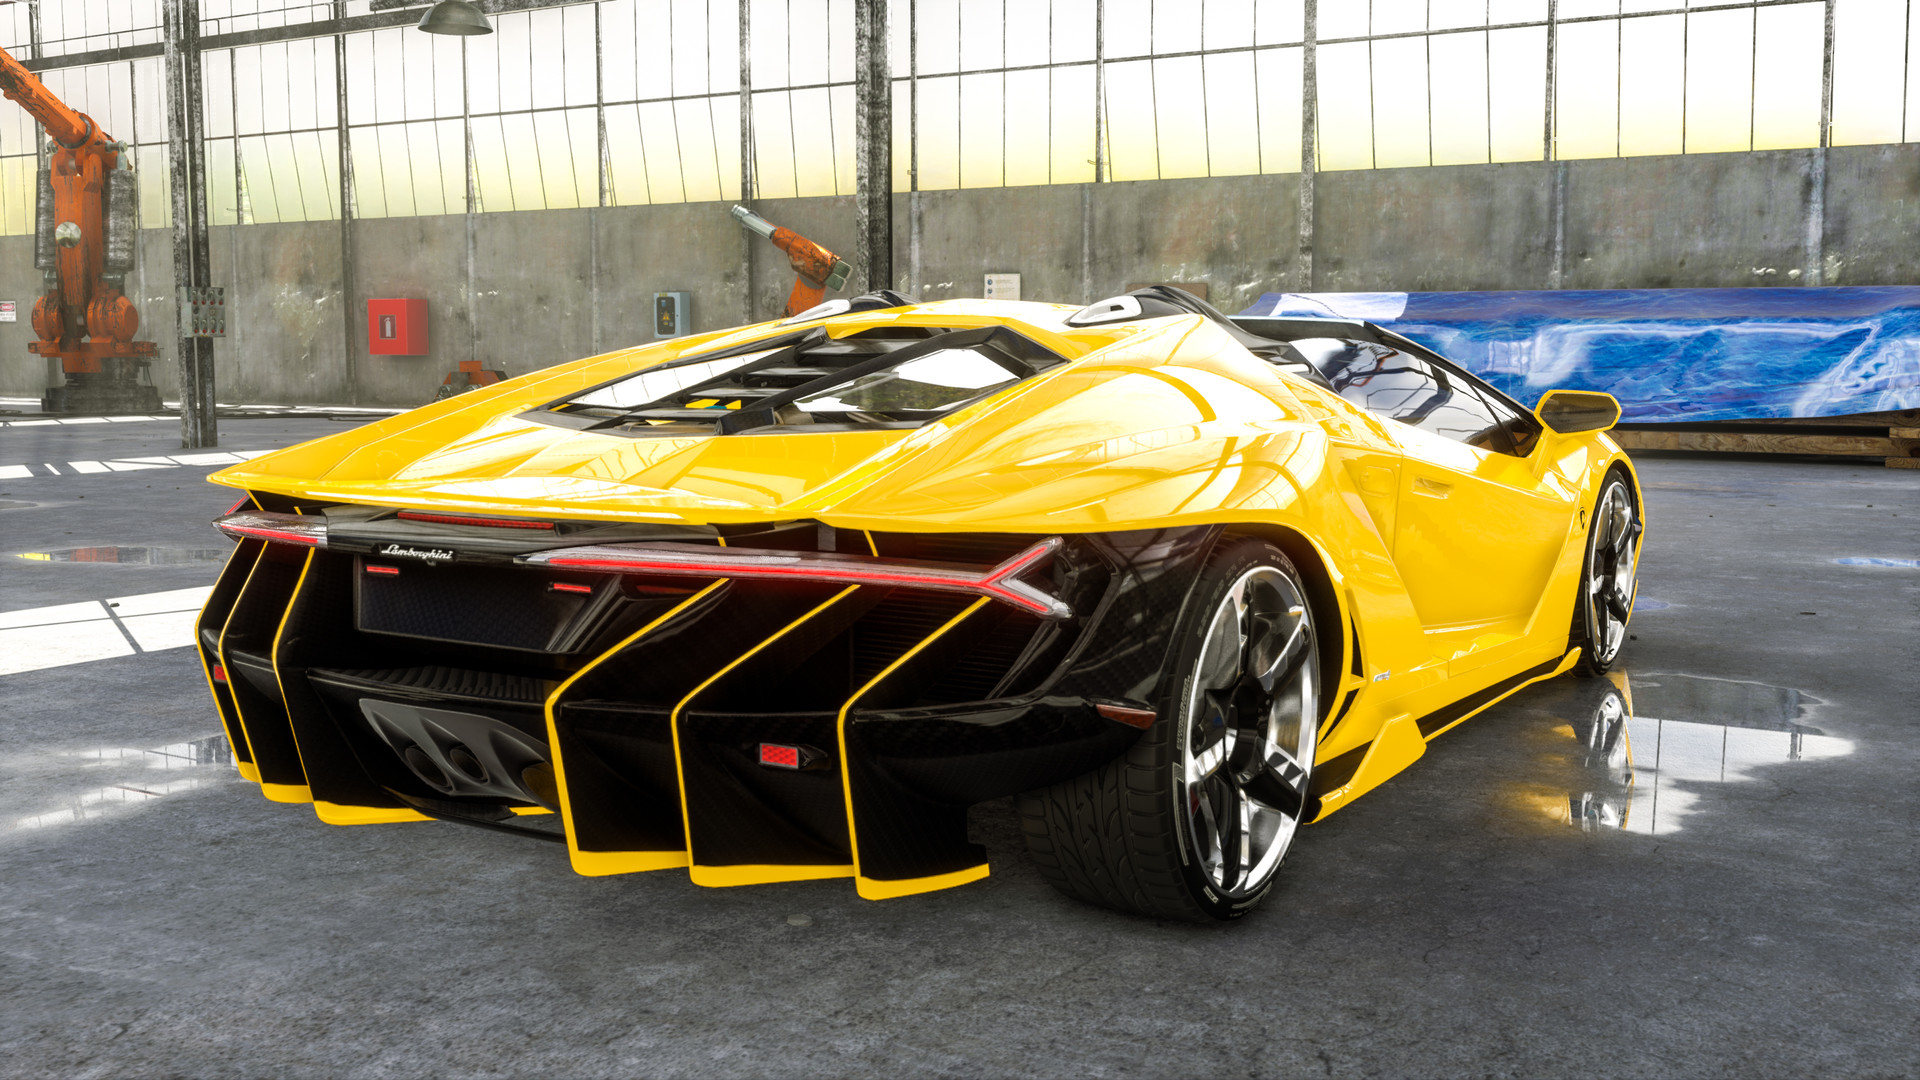 ArtStation - UE4 - Lamborghini Centenario Car Customizer